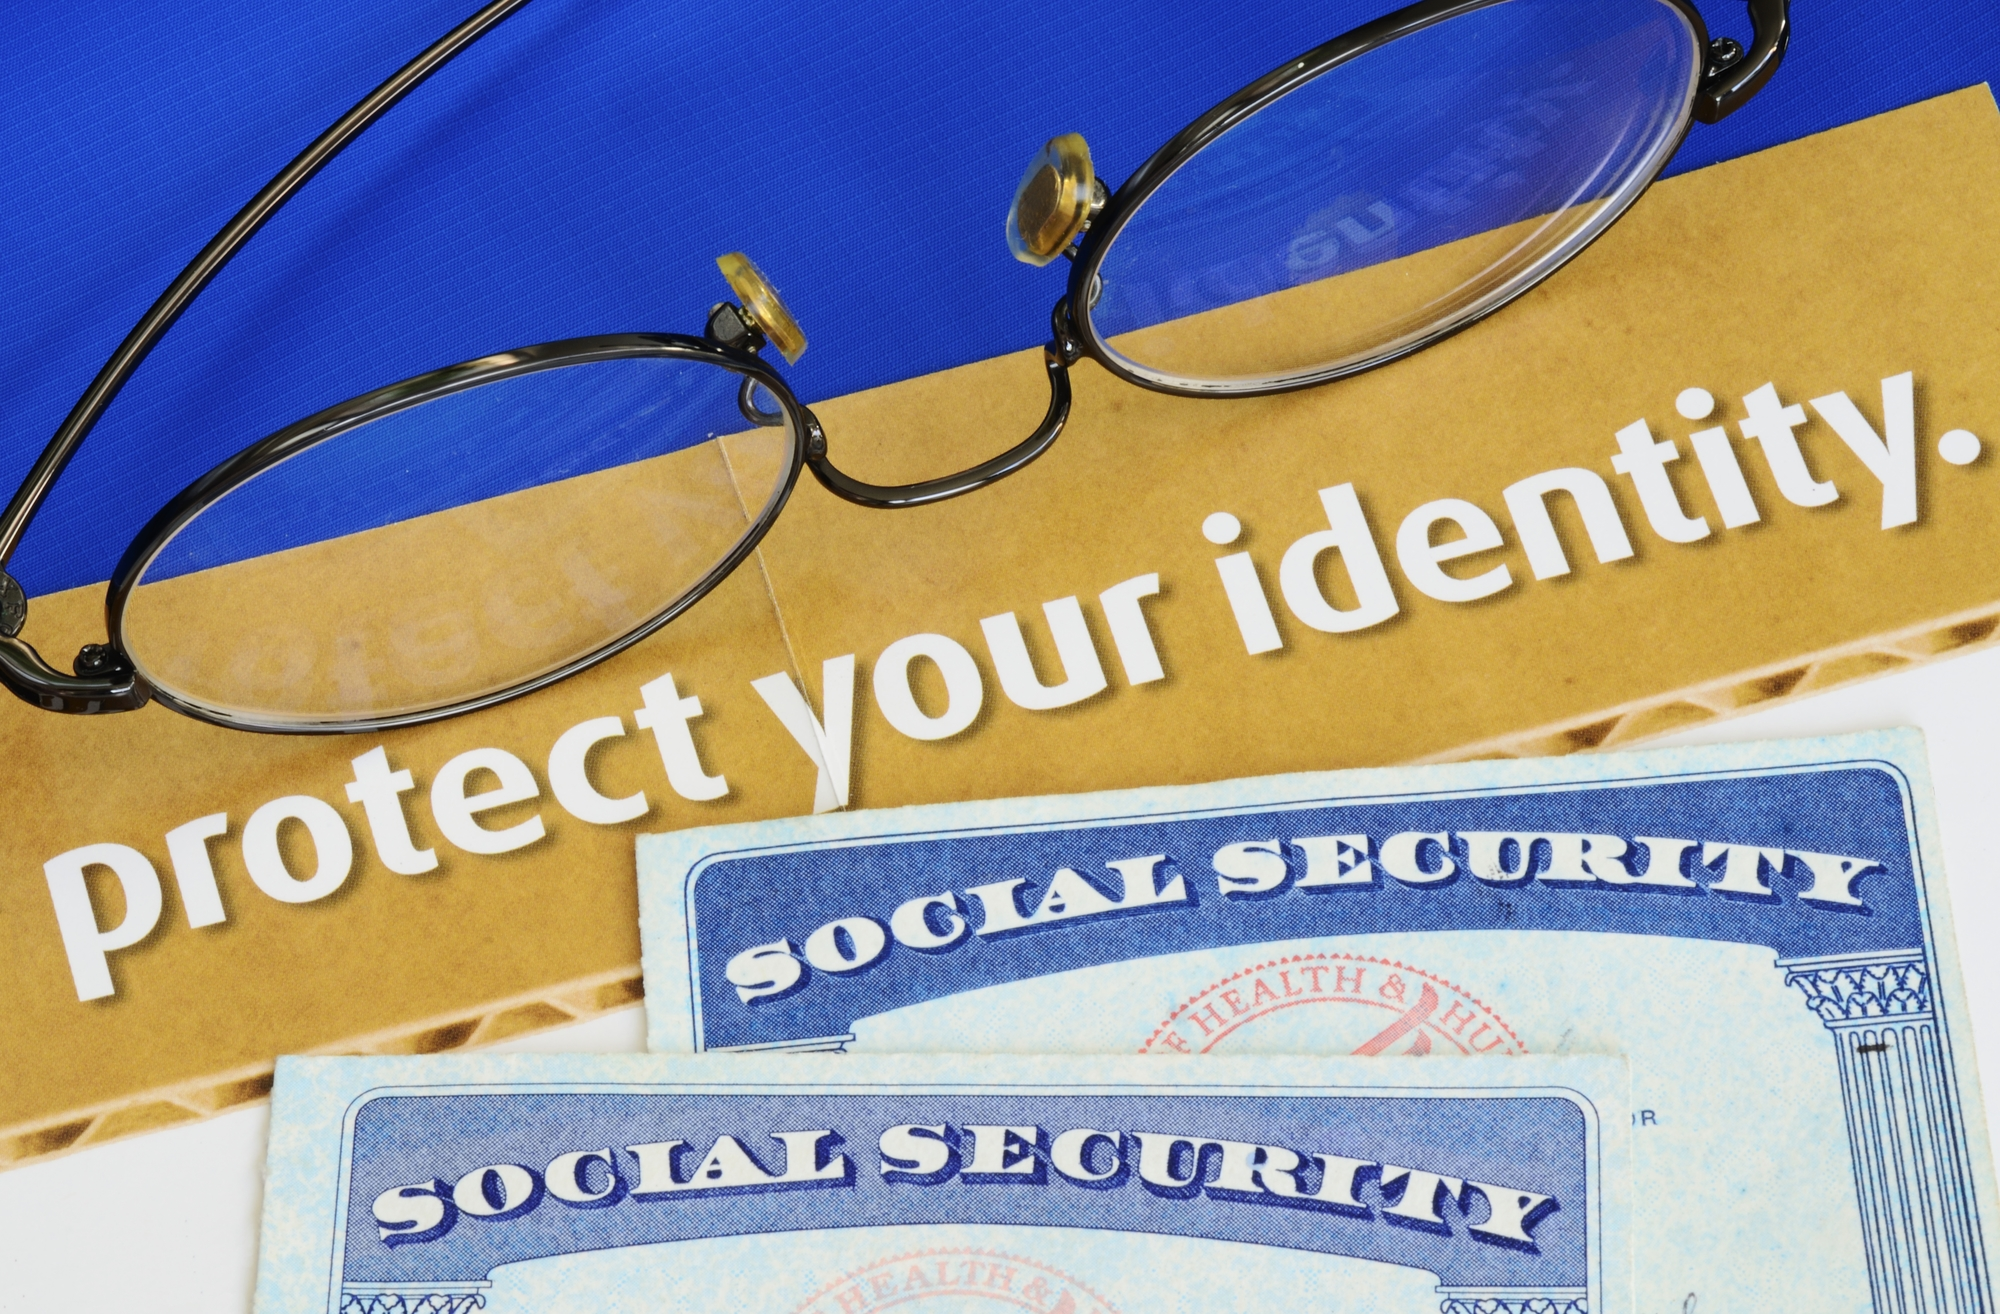 One the most important steps you should take to prevent identity thieves from opening a new line of credit in your name